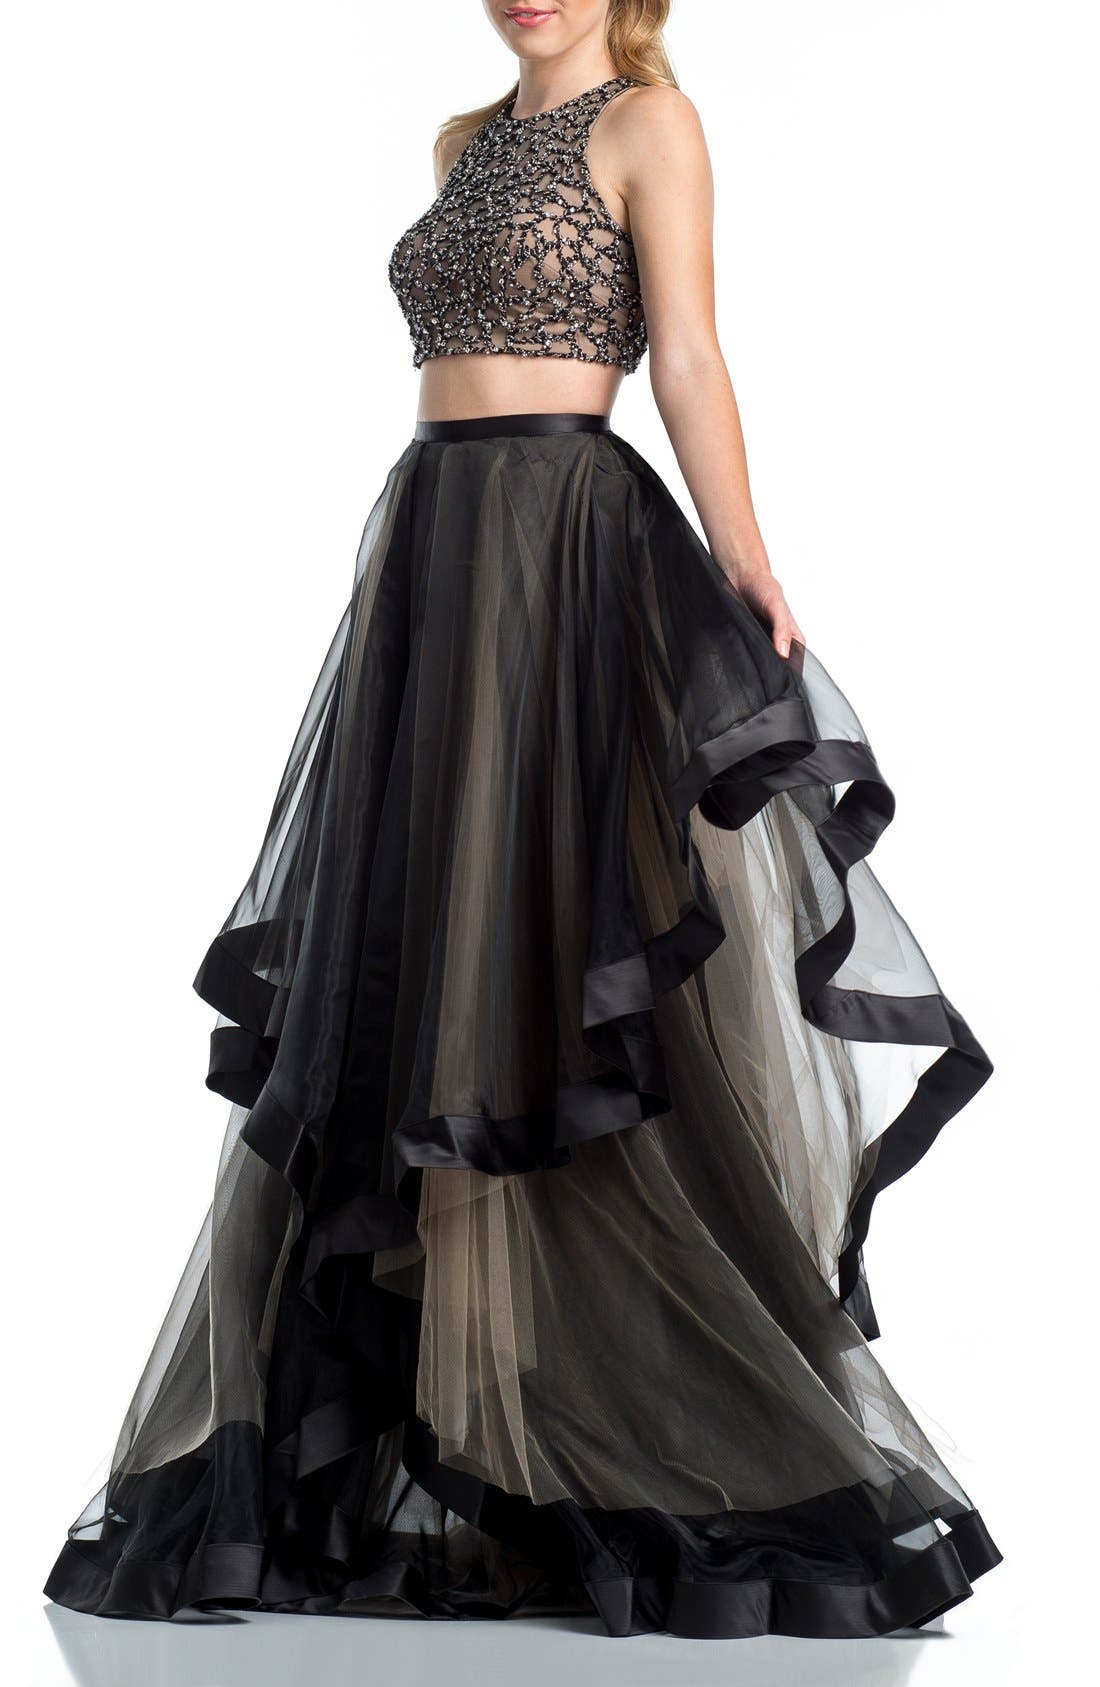 Alternate Image 1 Selected - Glamour by Terani Couture Beaded Top & Organza Two-Piece Ballgown